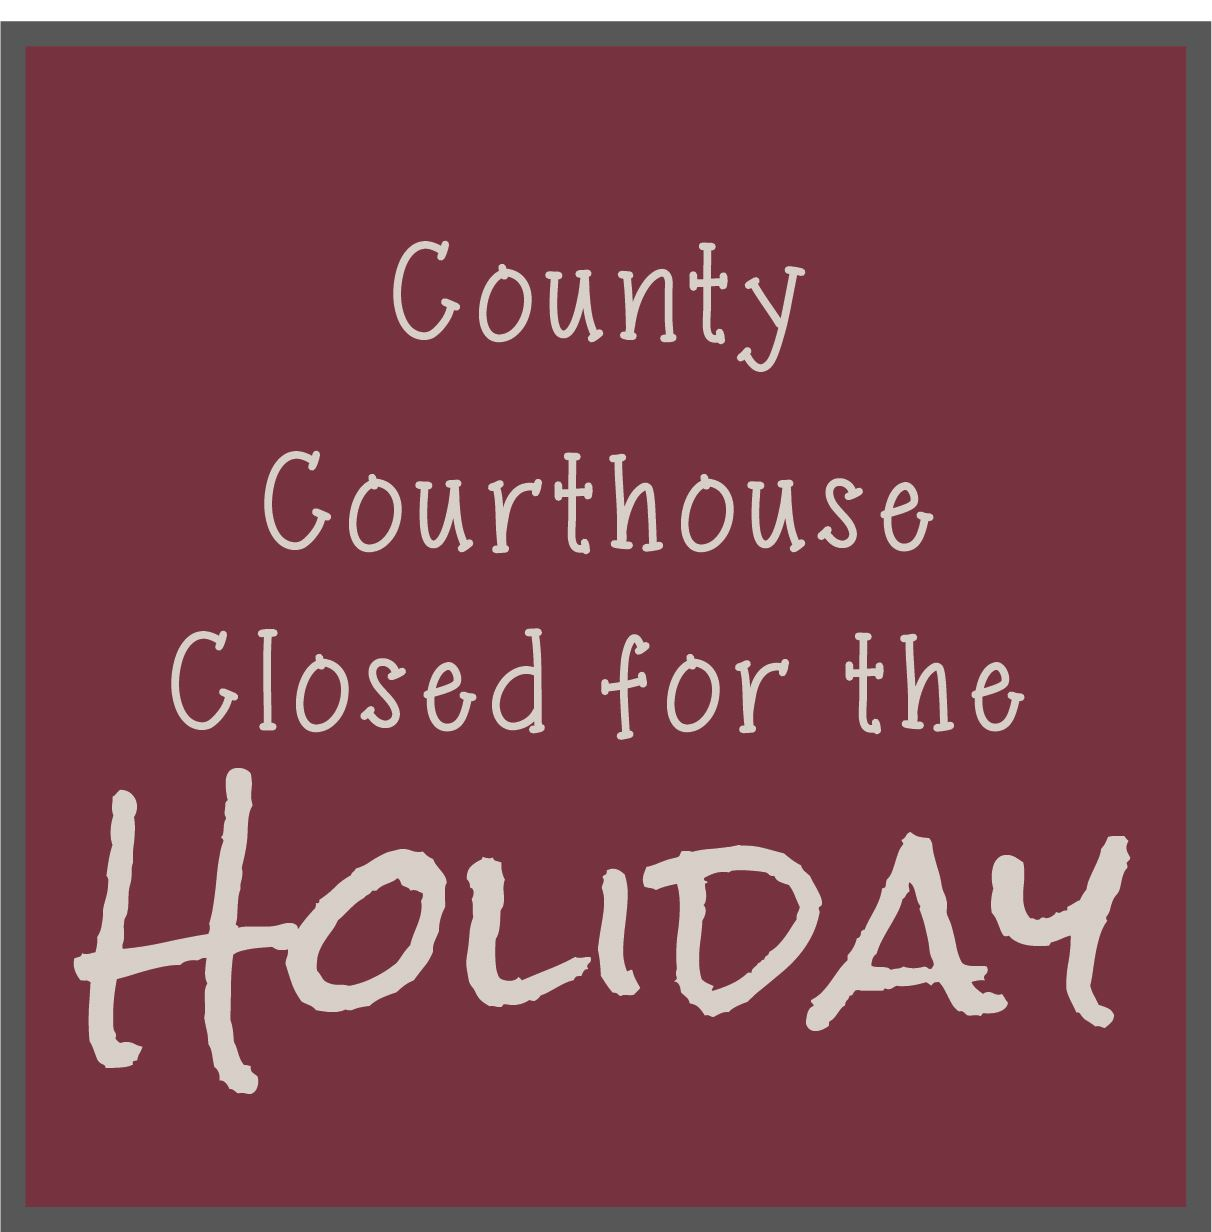 Holiday picture says County Courthouse Closed for the Holiday